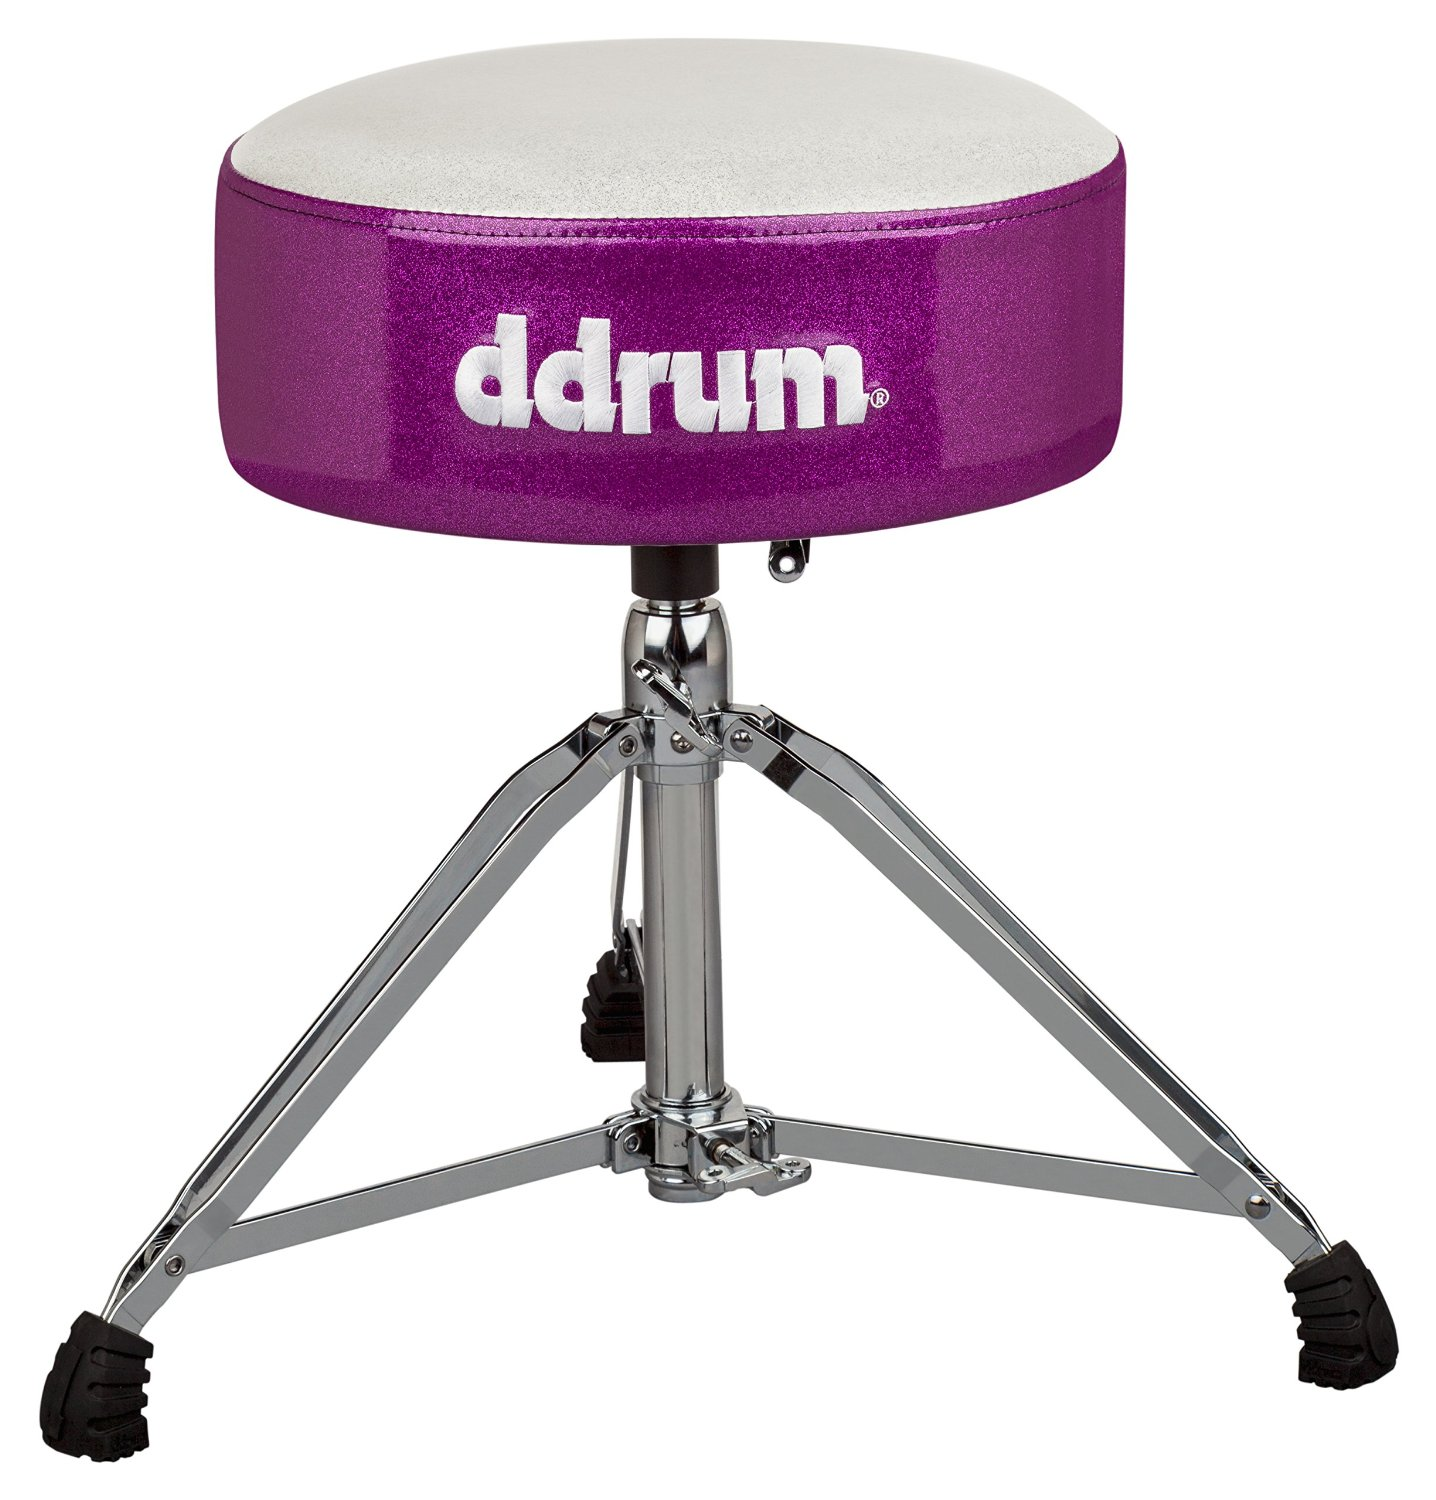 """dDrum Mercury Series Fat Throne with 5.5"""" Thick Padding - White Top/Purple Side (MFAT WP)"""